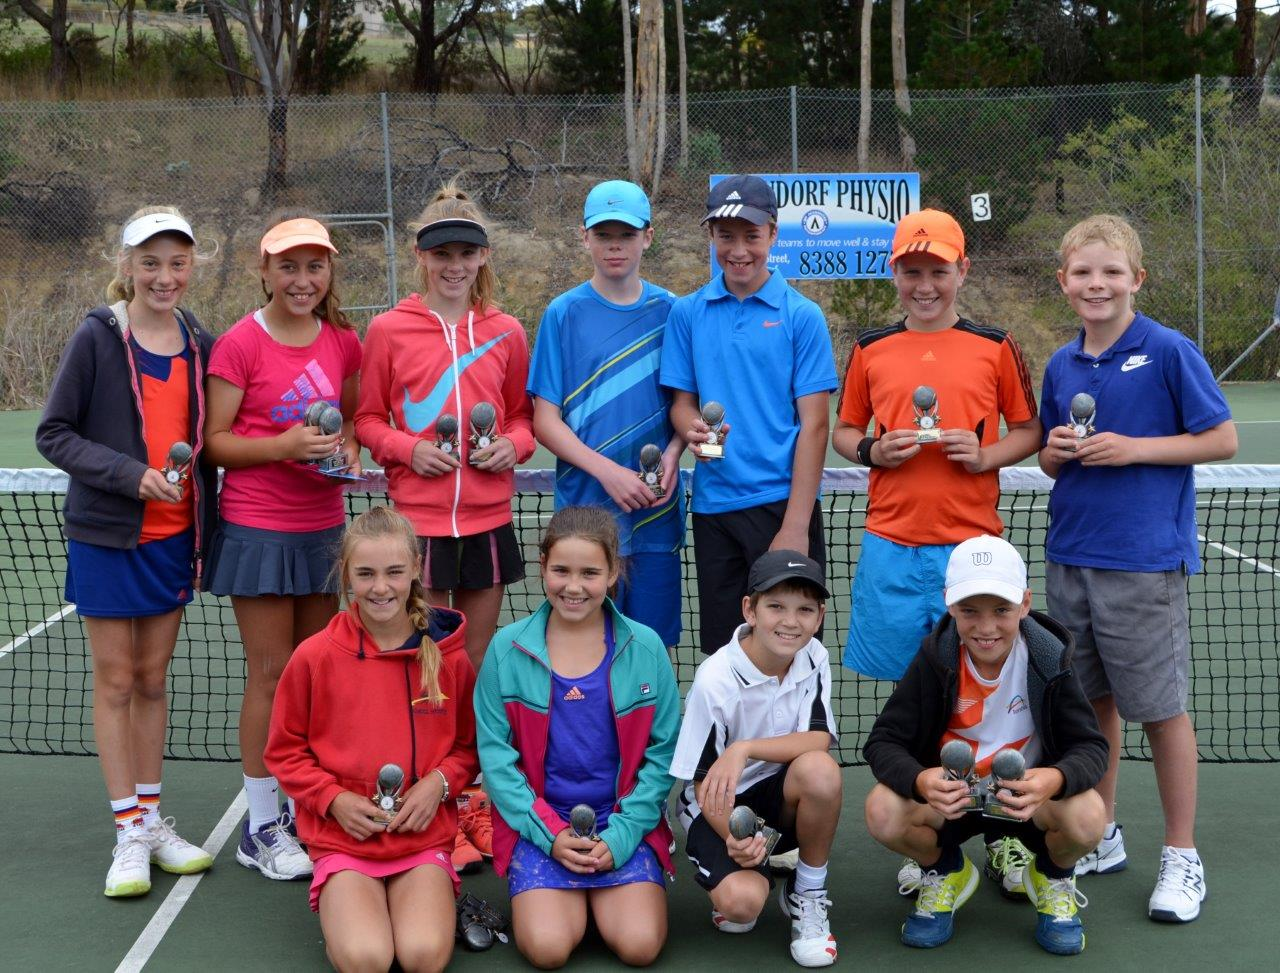 12 and Under Tennis